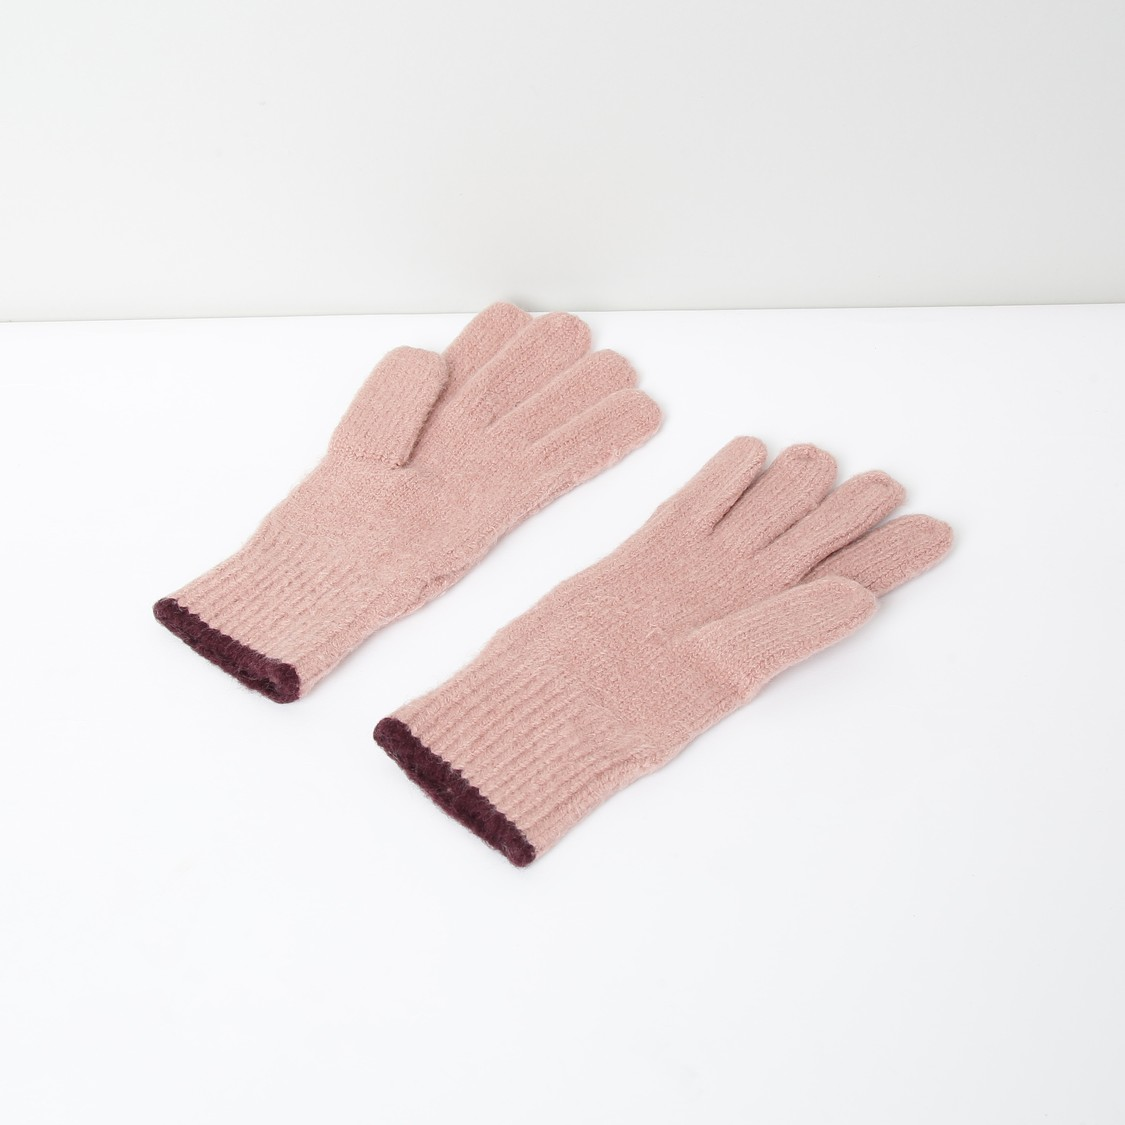 MAX Patterned Knit Ribbed Gloves